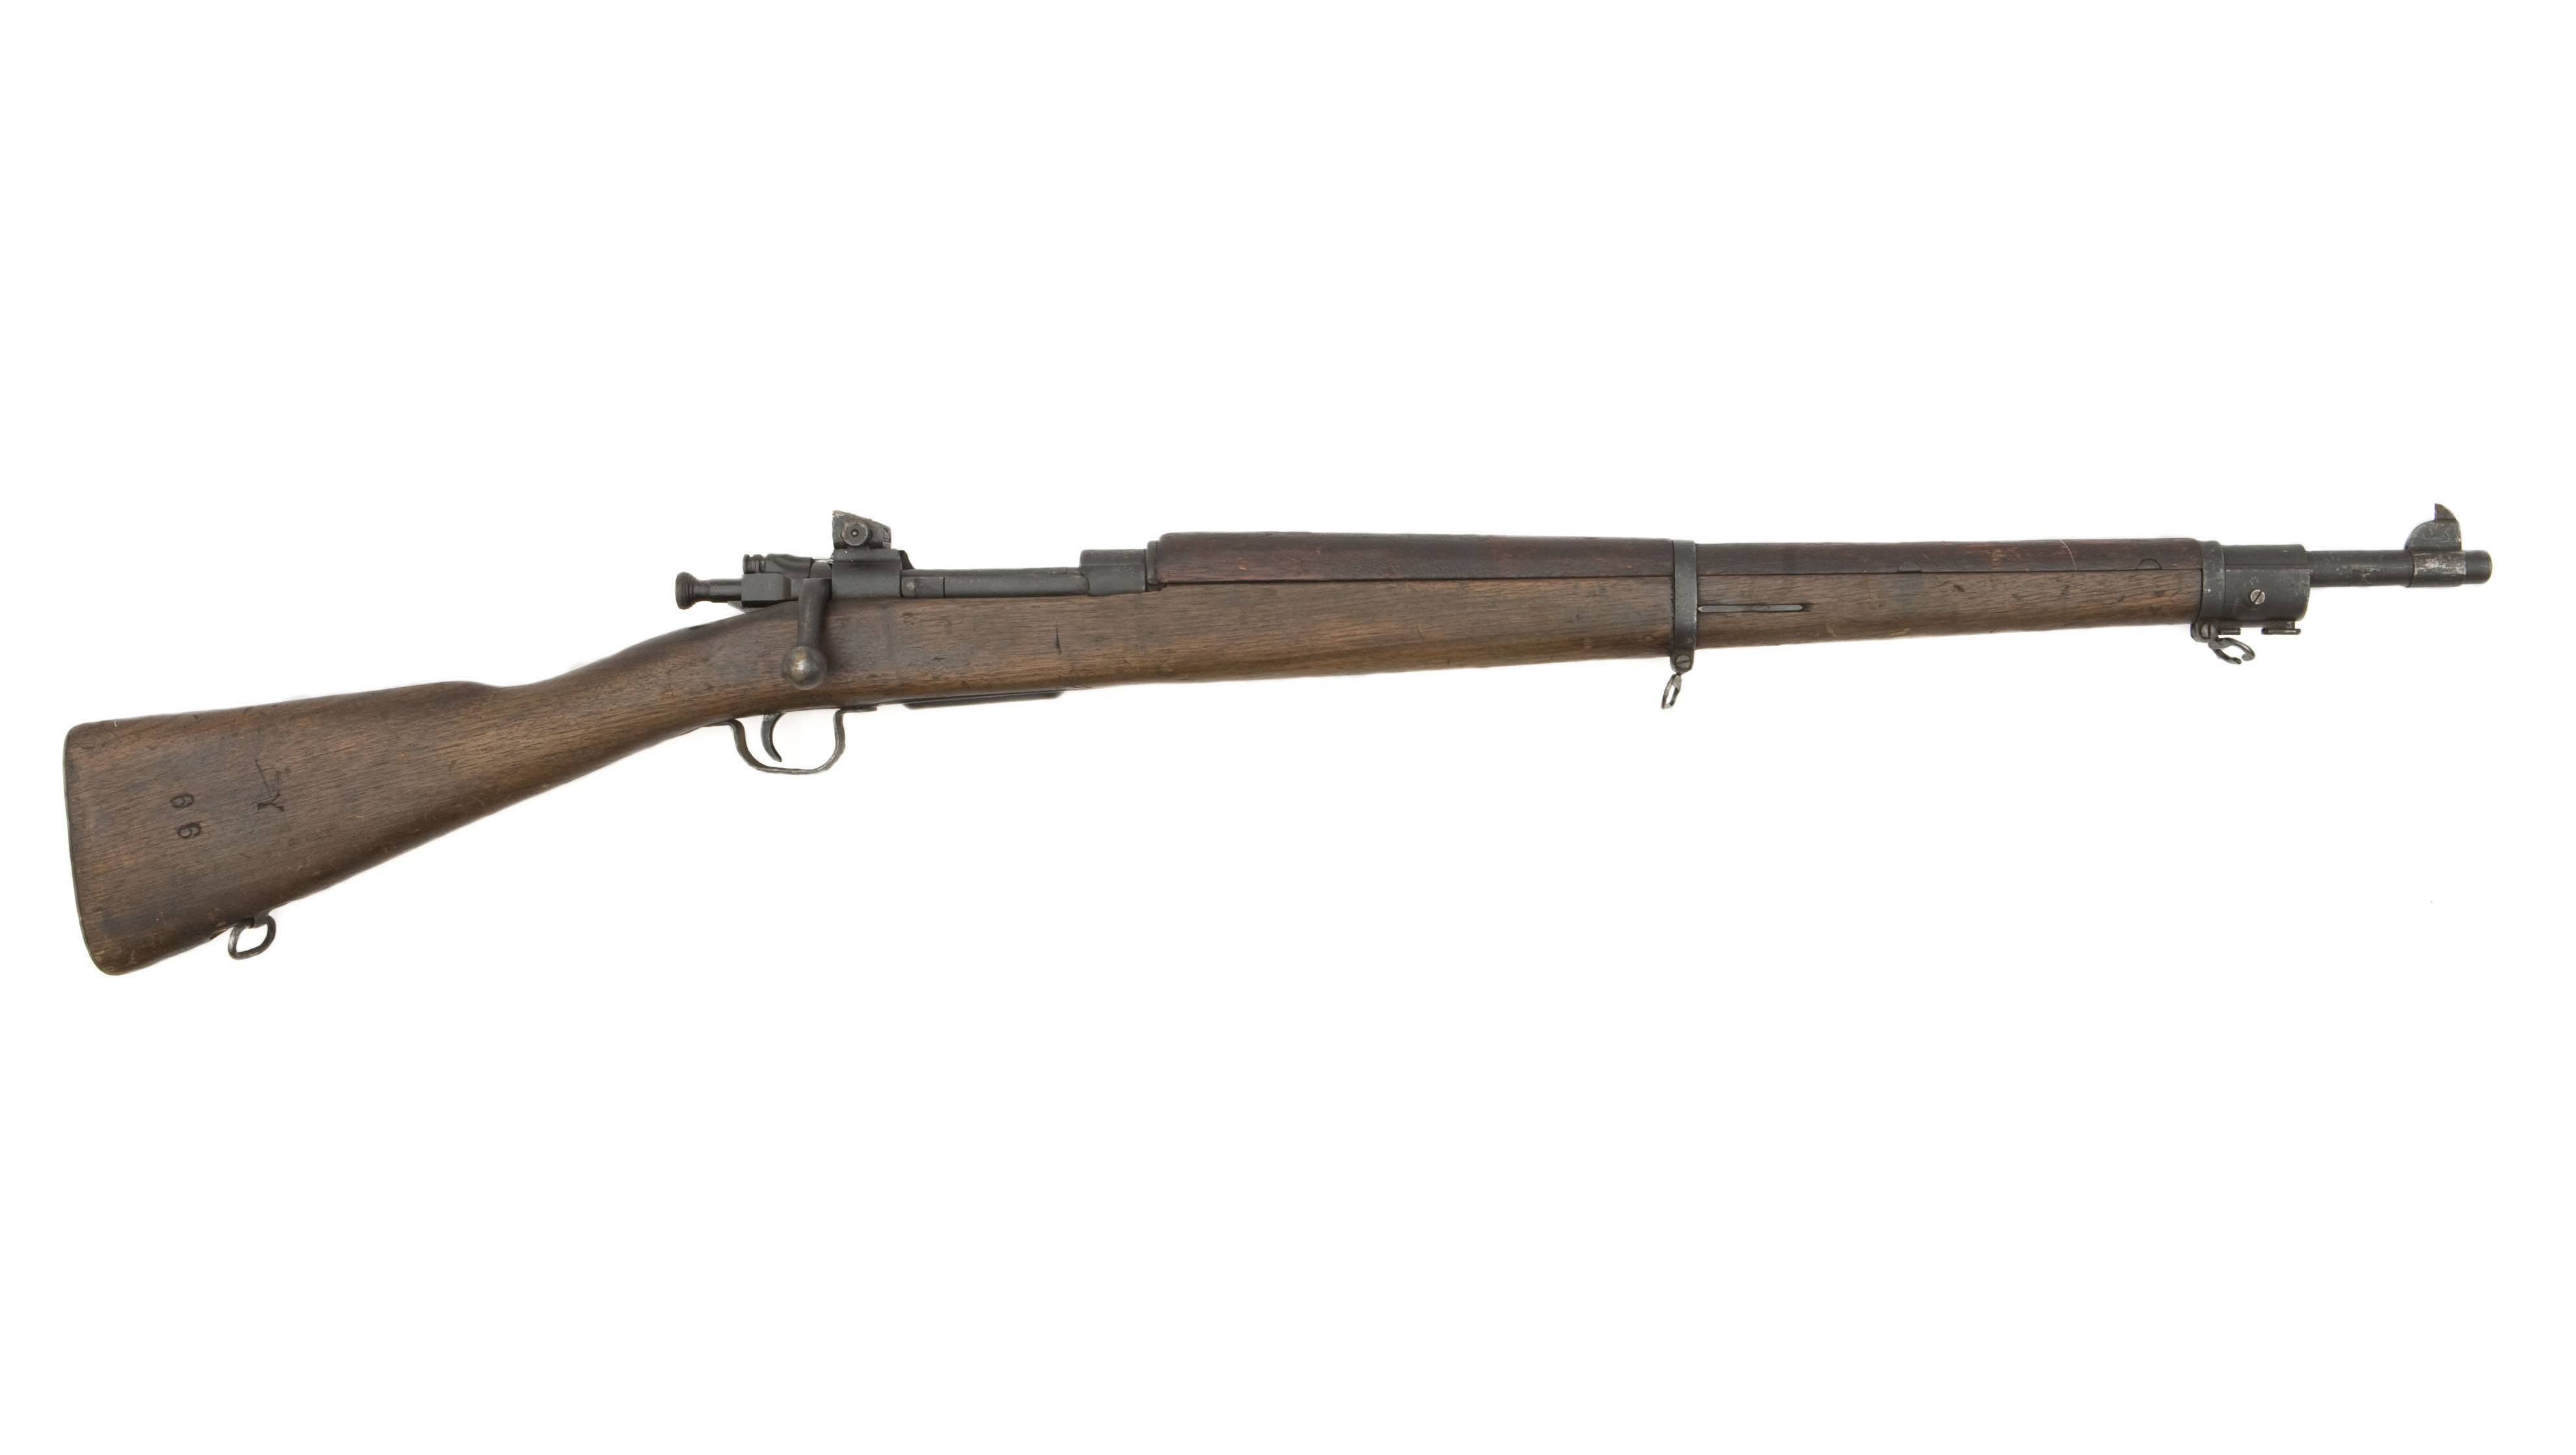 M1903 springfield rifle вики